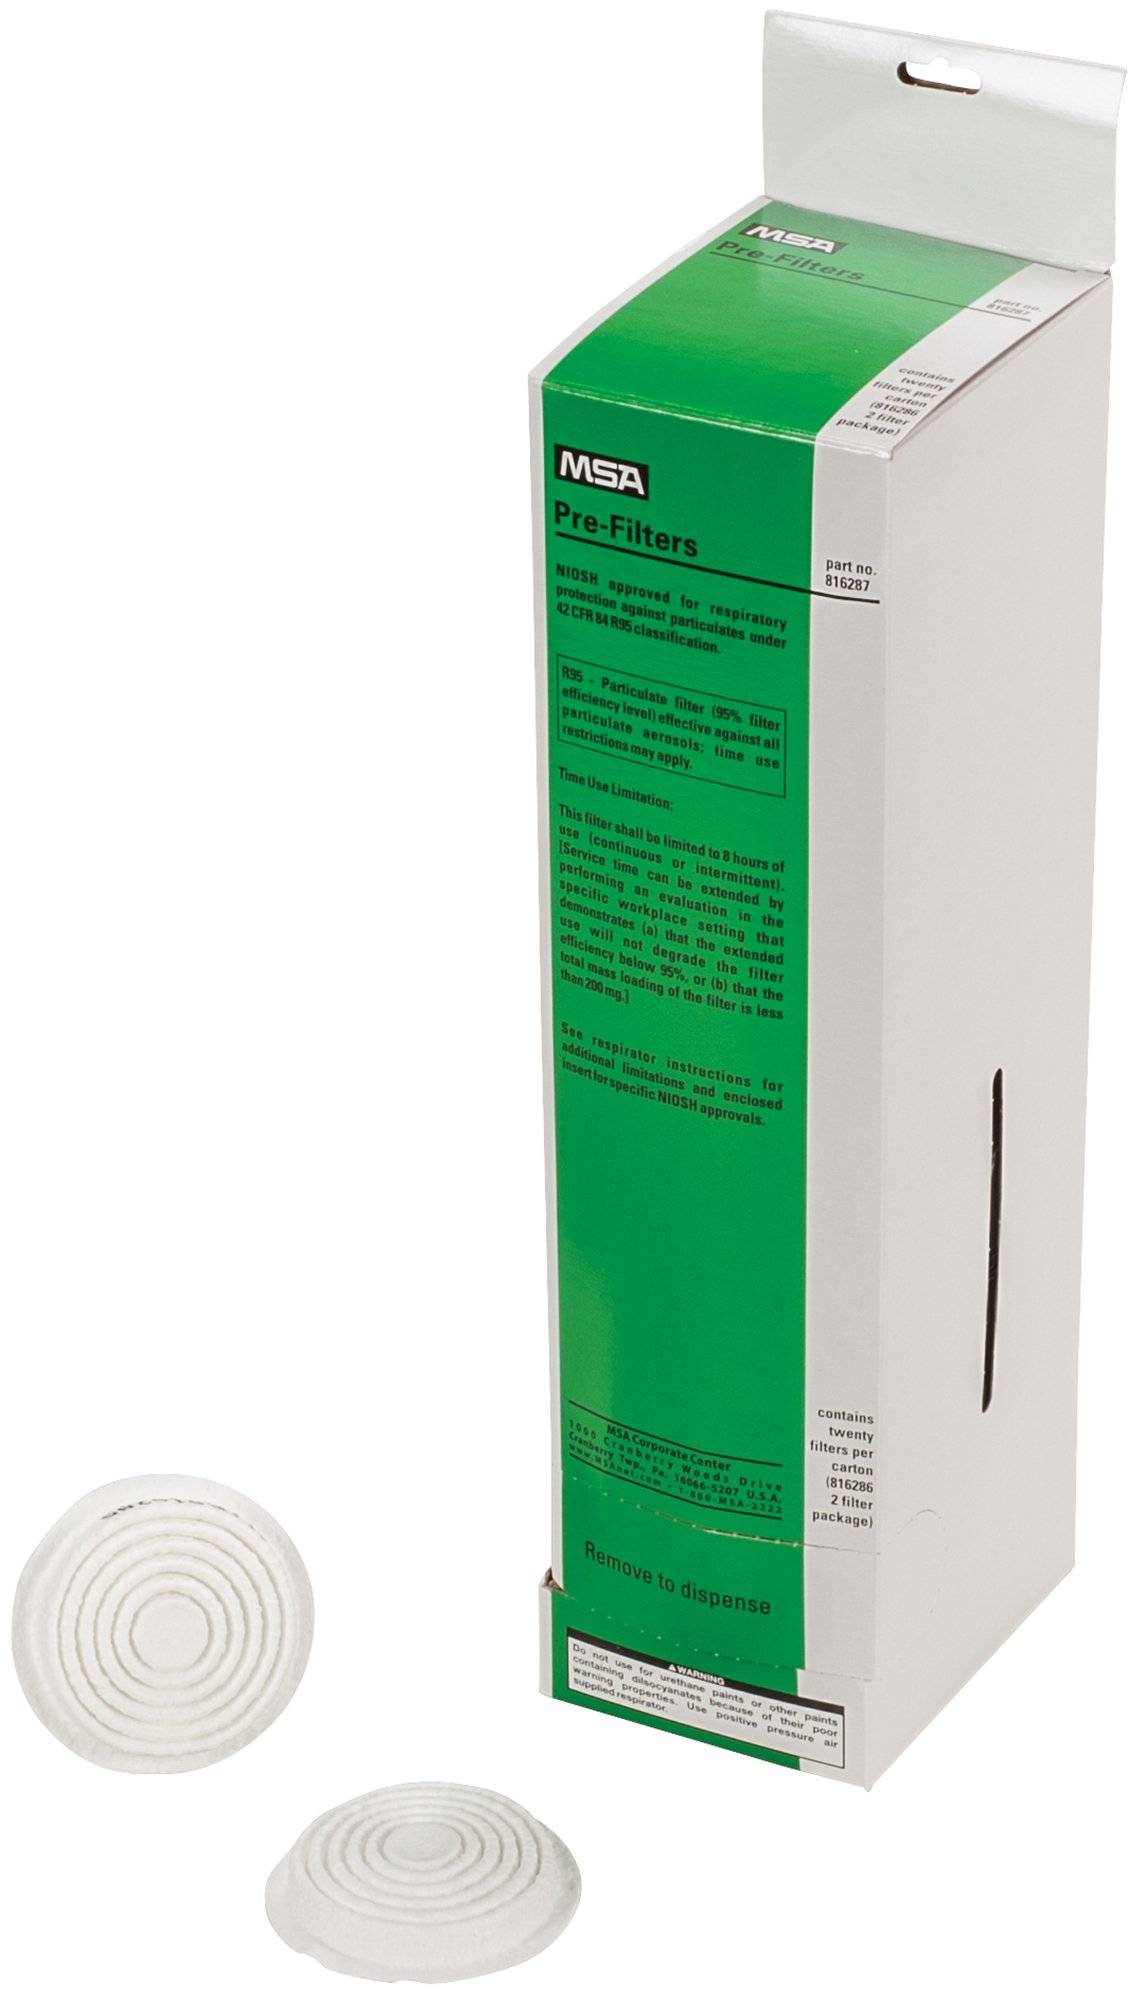 MSA 816287 R95 Pre-Filter for Comfo Ultra-Twin Respirators (Pack of 20) by MSA